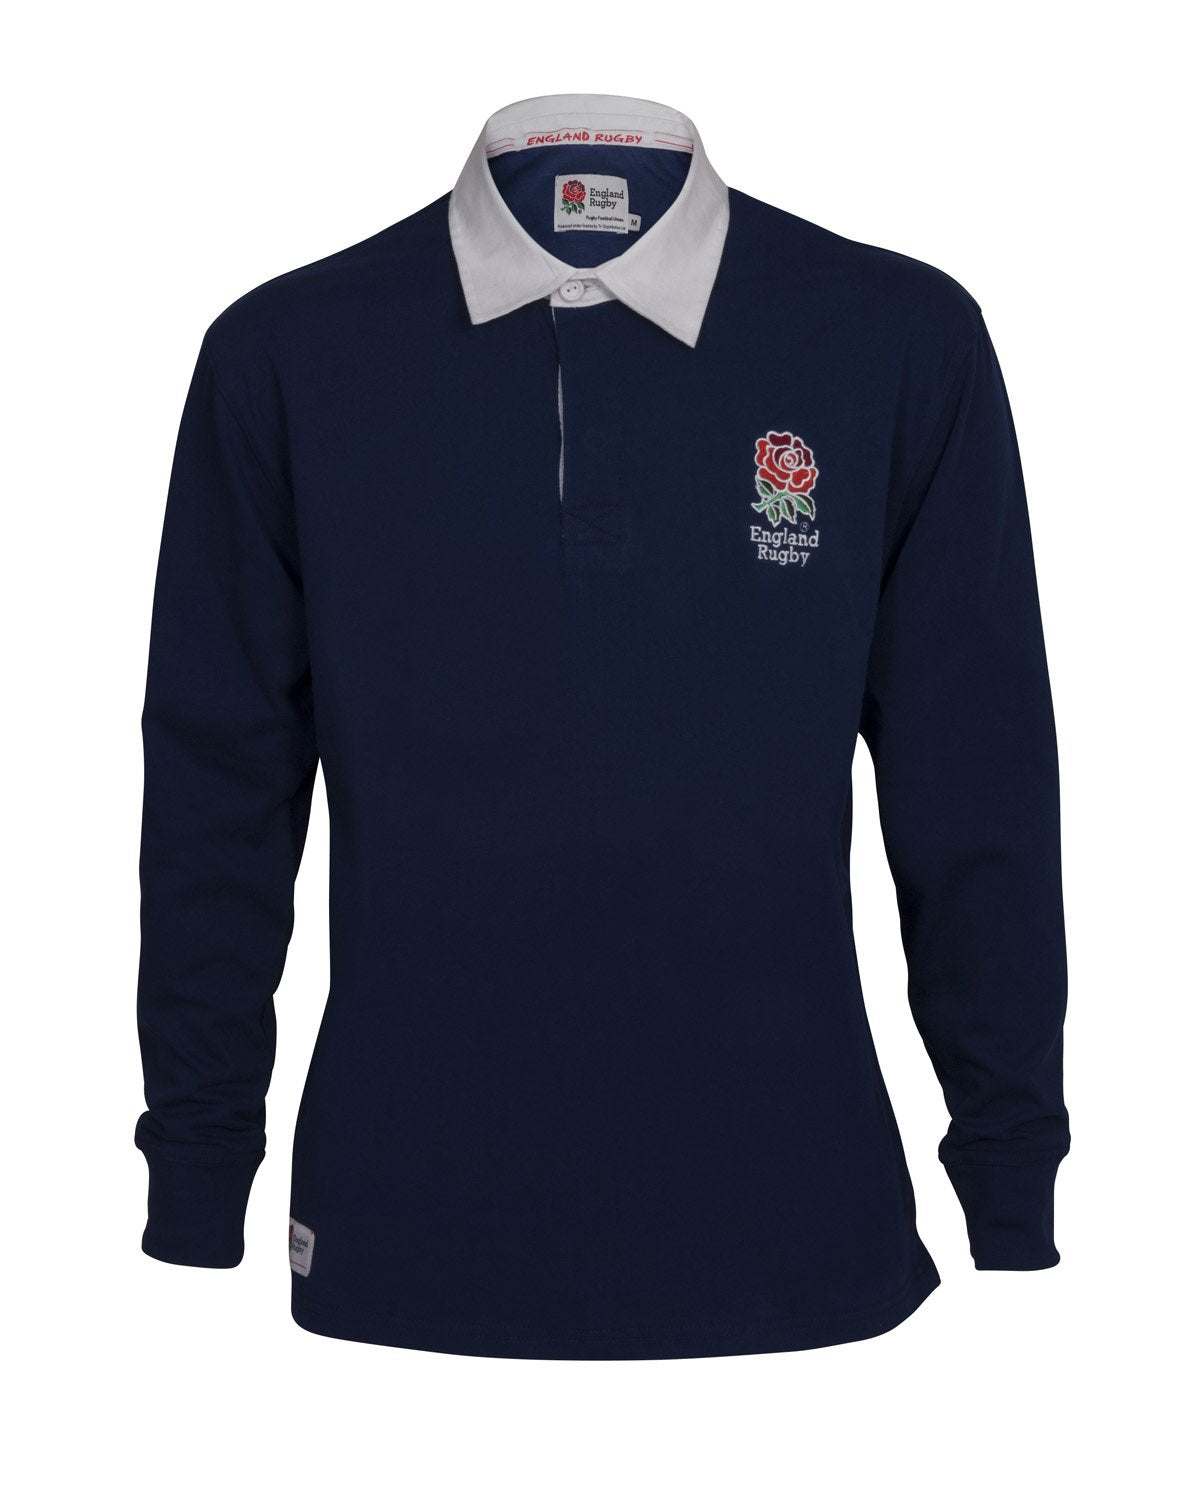 506d58c7a35 England Rugby 2018/19 Classic Shirt – Six Nations France